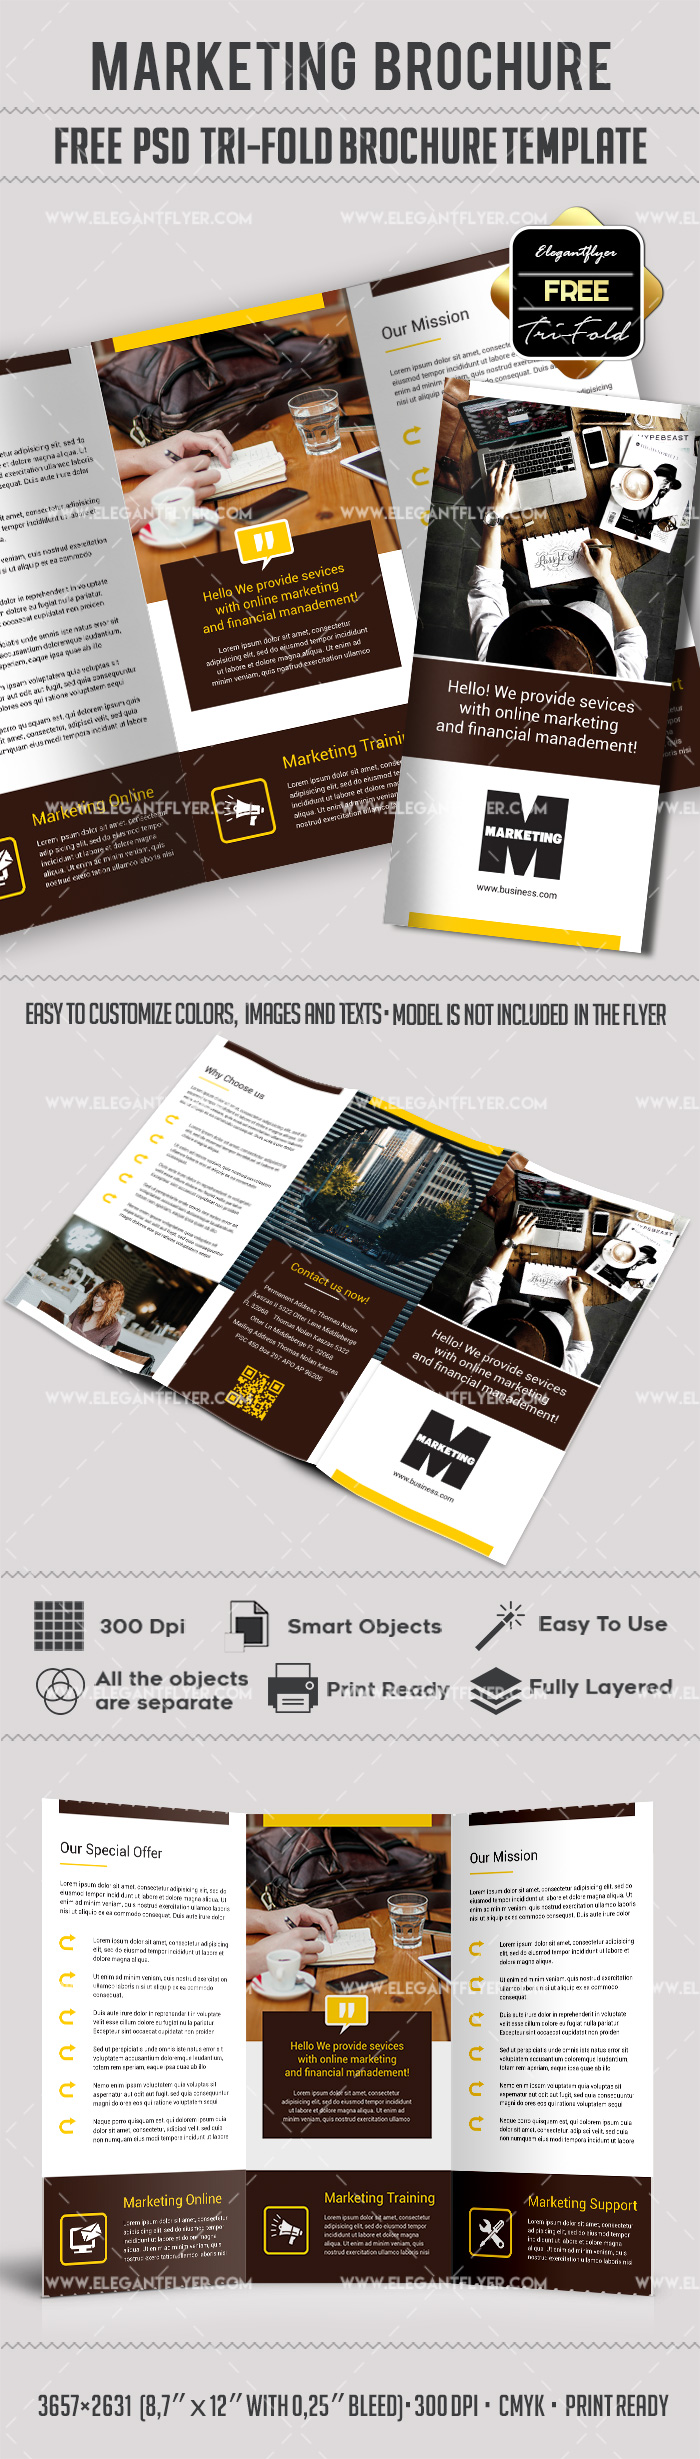 free tri fold brochures templates downloads - marketing free tri fold psd brochure template by